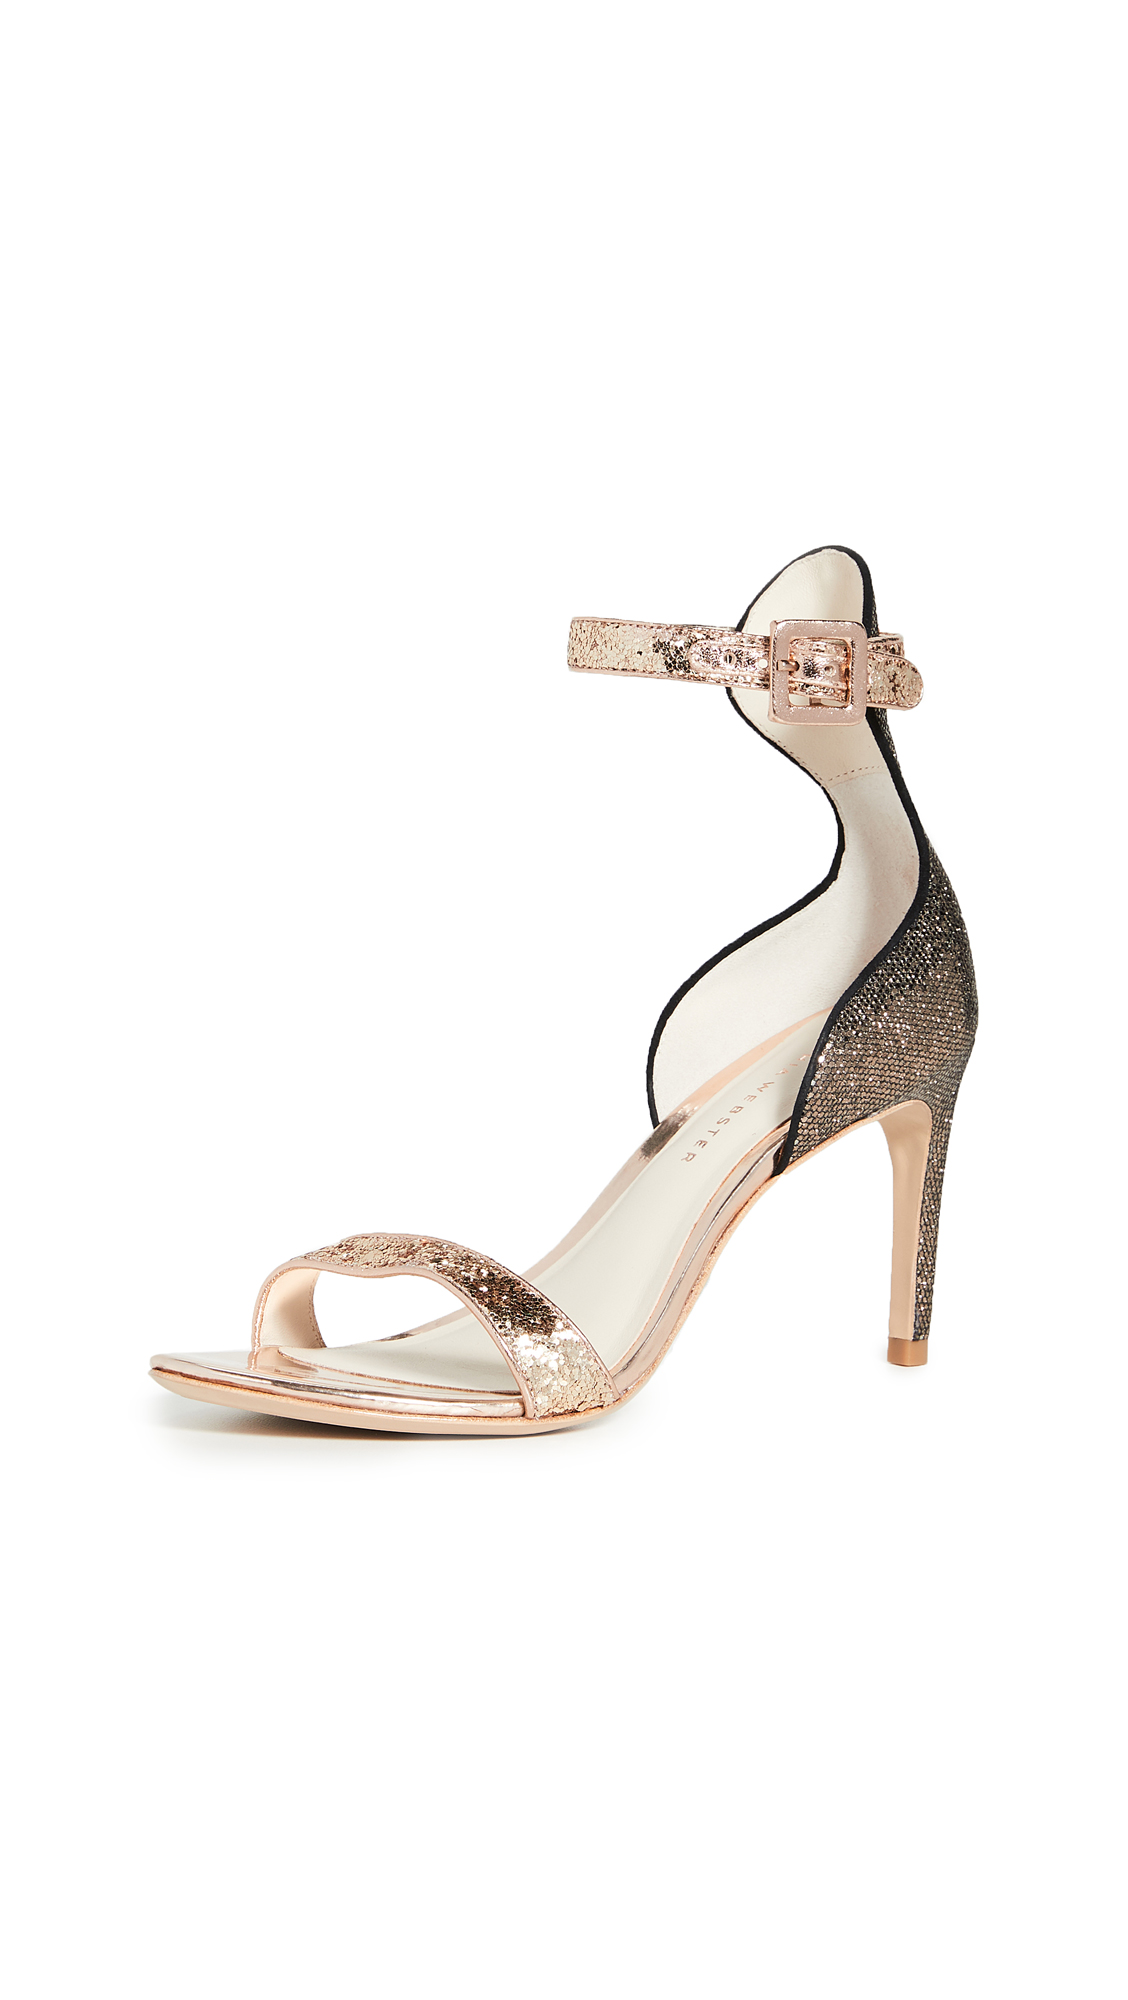 Sophia Webster Nicole Mid Sandals In Bronze/gold Glitter